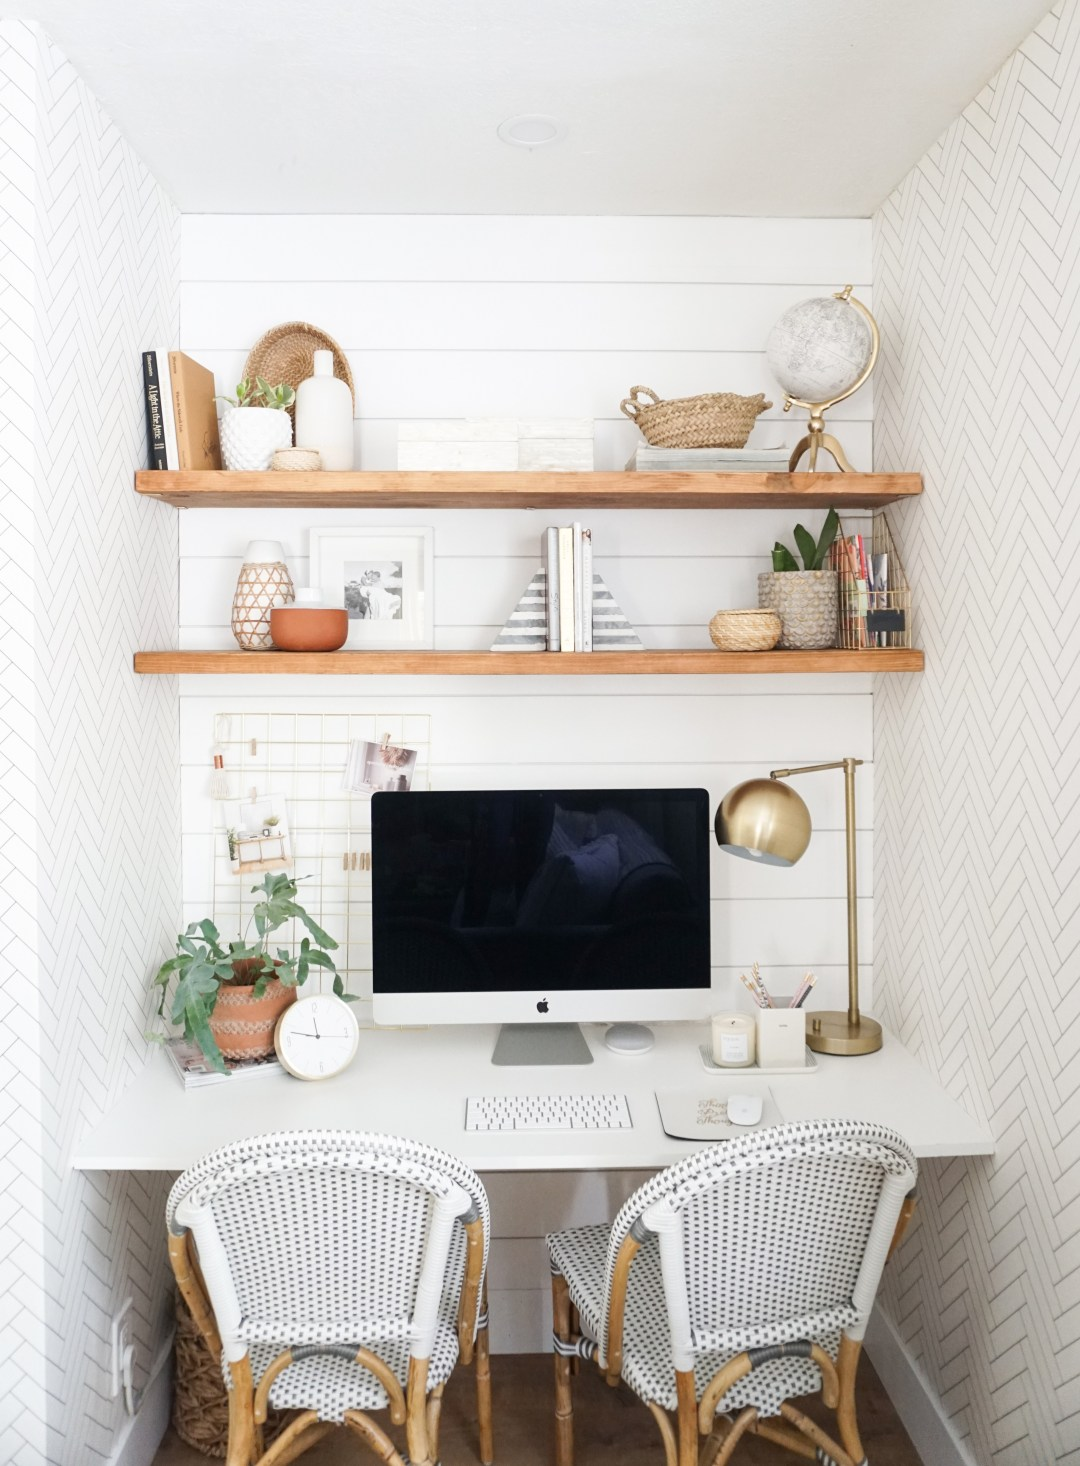 SOURCE: http://www.almafied.com/a-closet-turned-modern-chic-space-saving-office-nook-reveal/